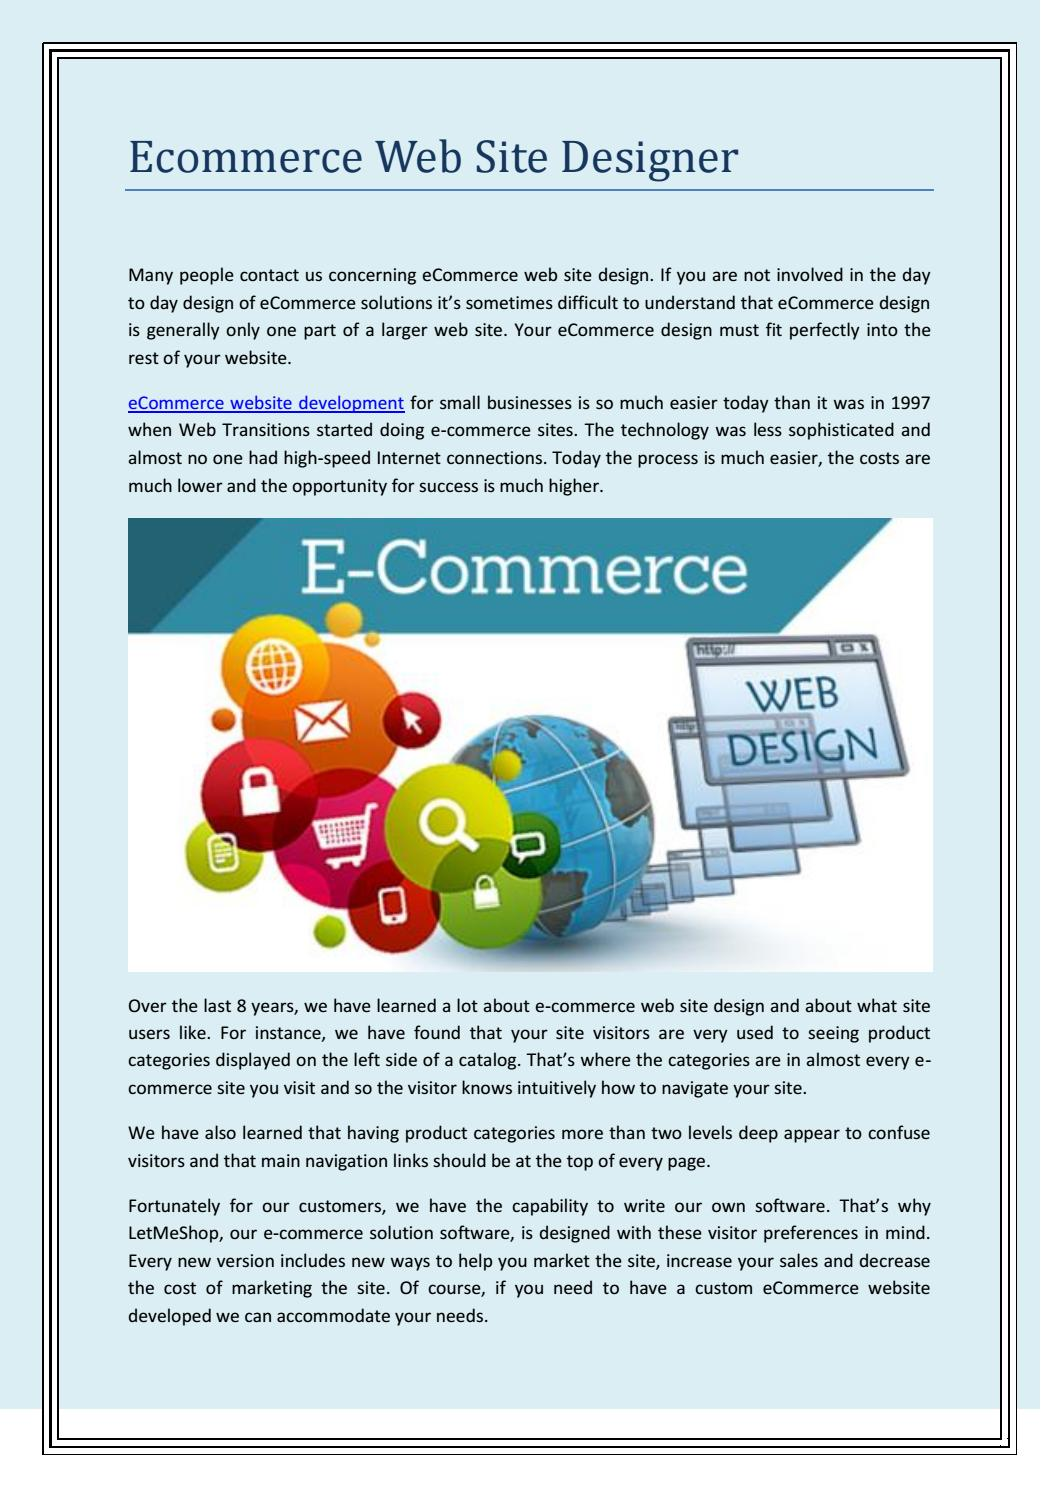 Ecommerce Web Site Designer by 247labsca - issuu